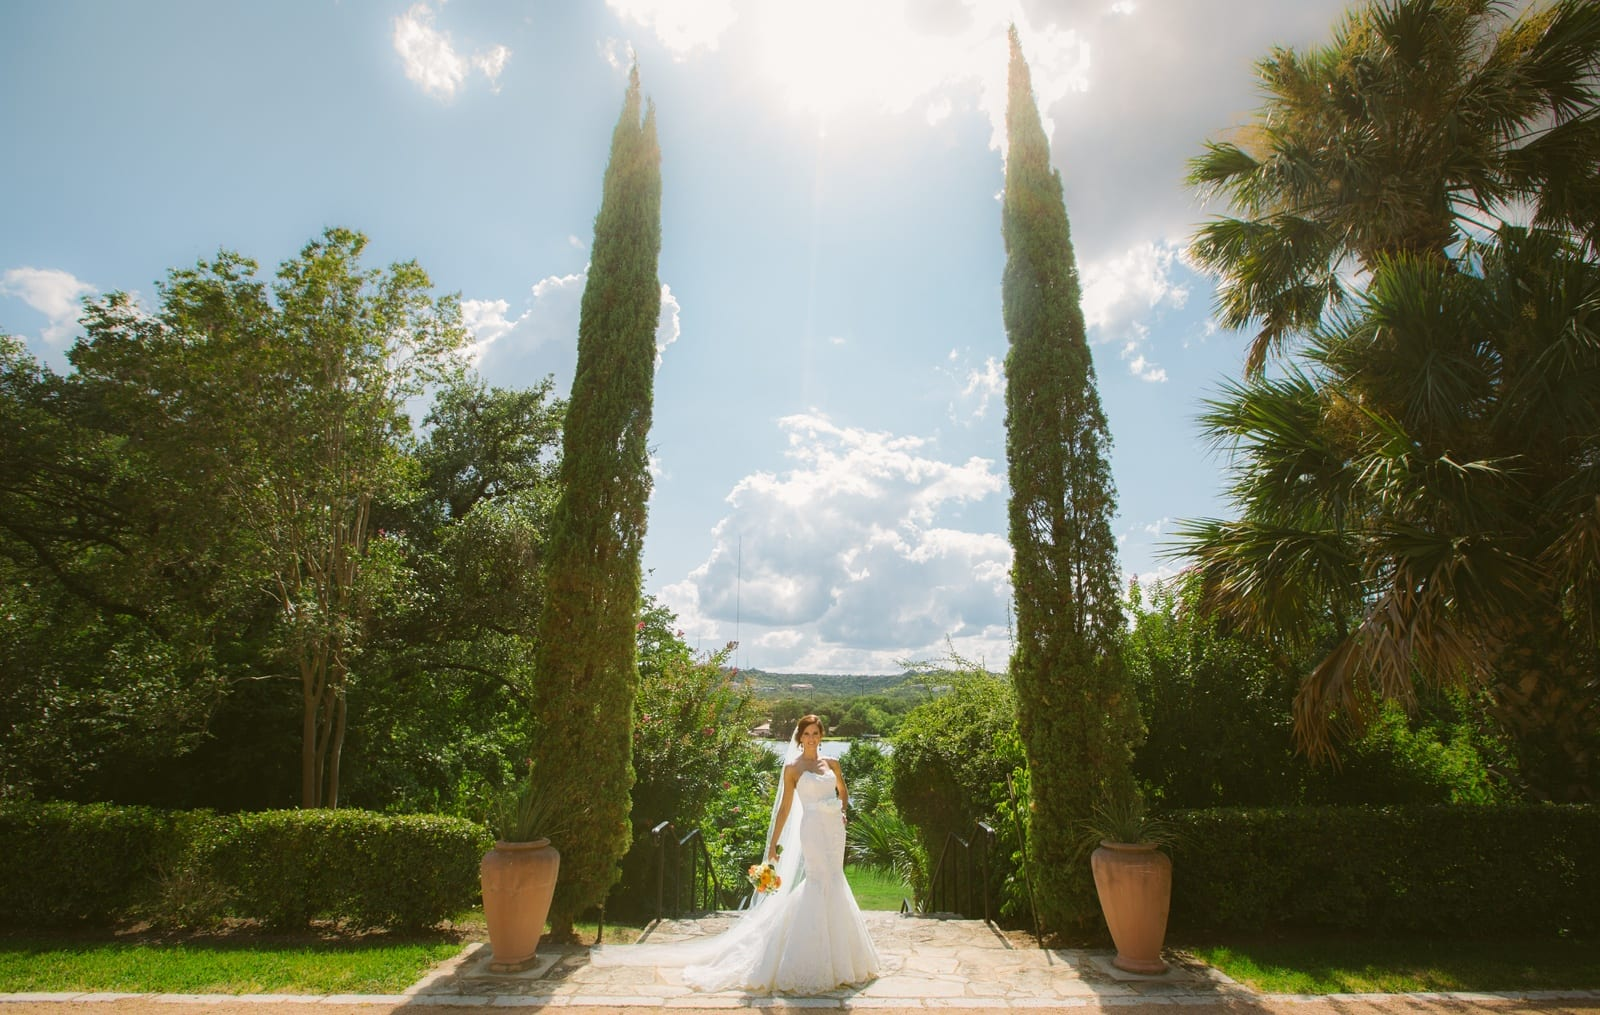 Laguna Gloria Bridal Portraits  Kelly  The Bird  The Bear  Austin  Destination Wedding